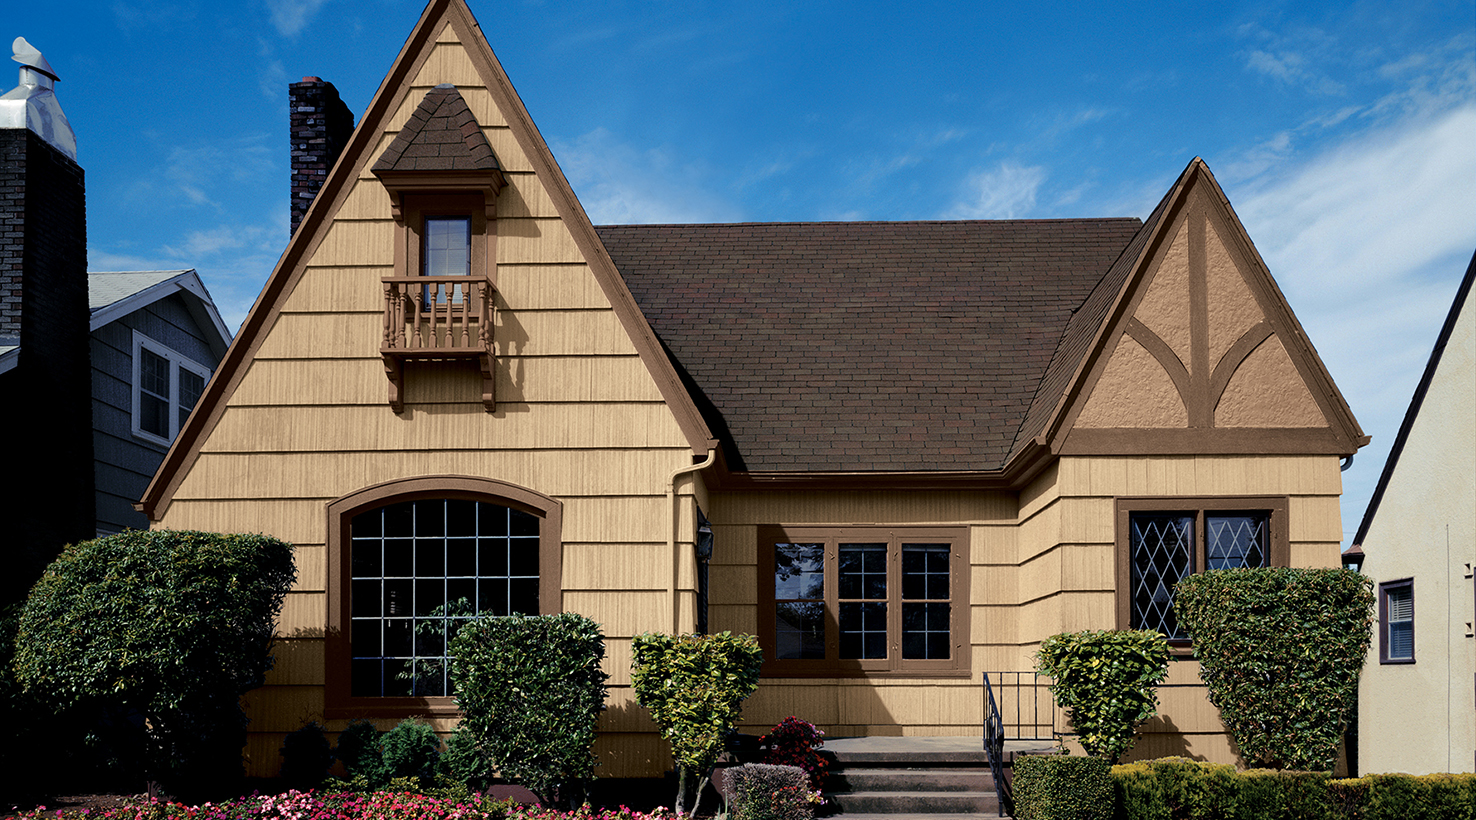 Exterior house color inspiration sherwin williams for Pictures of exterior homes